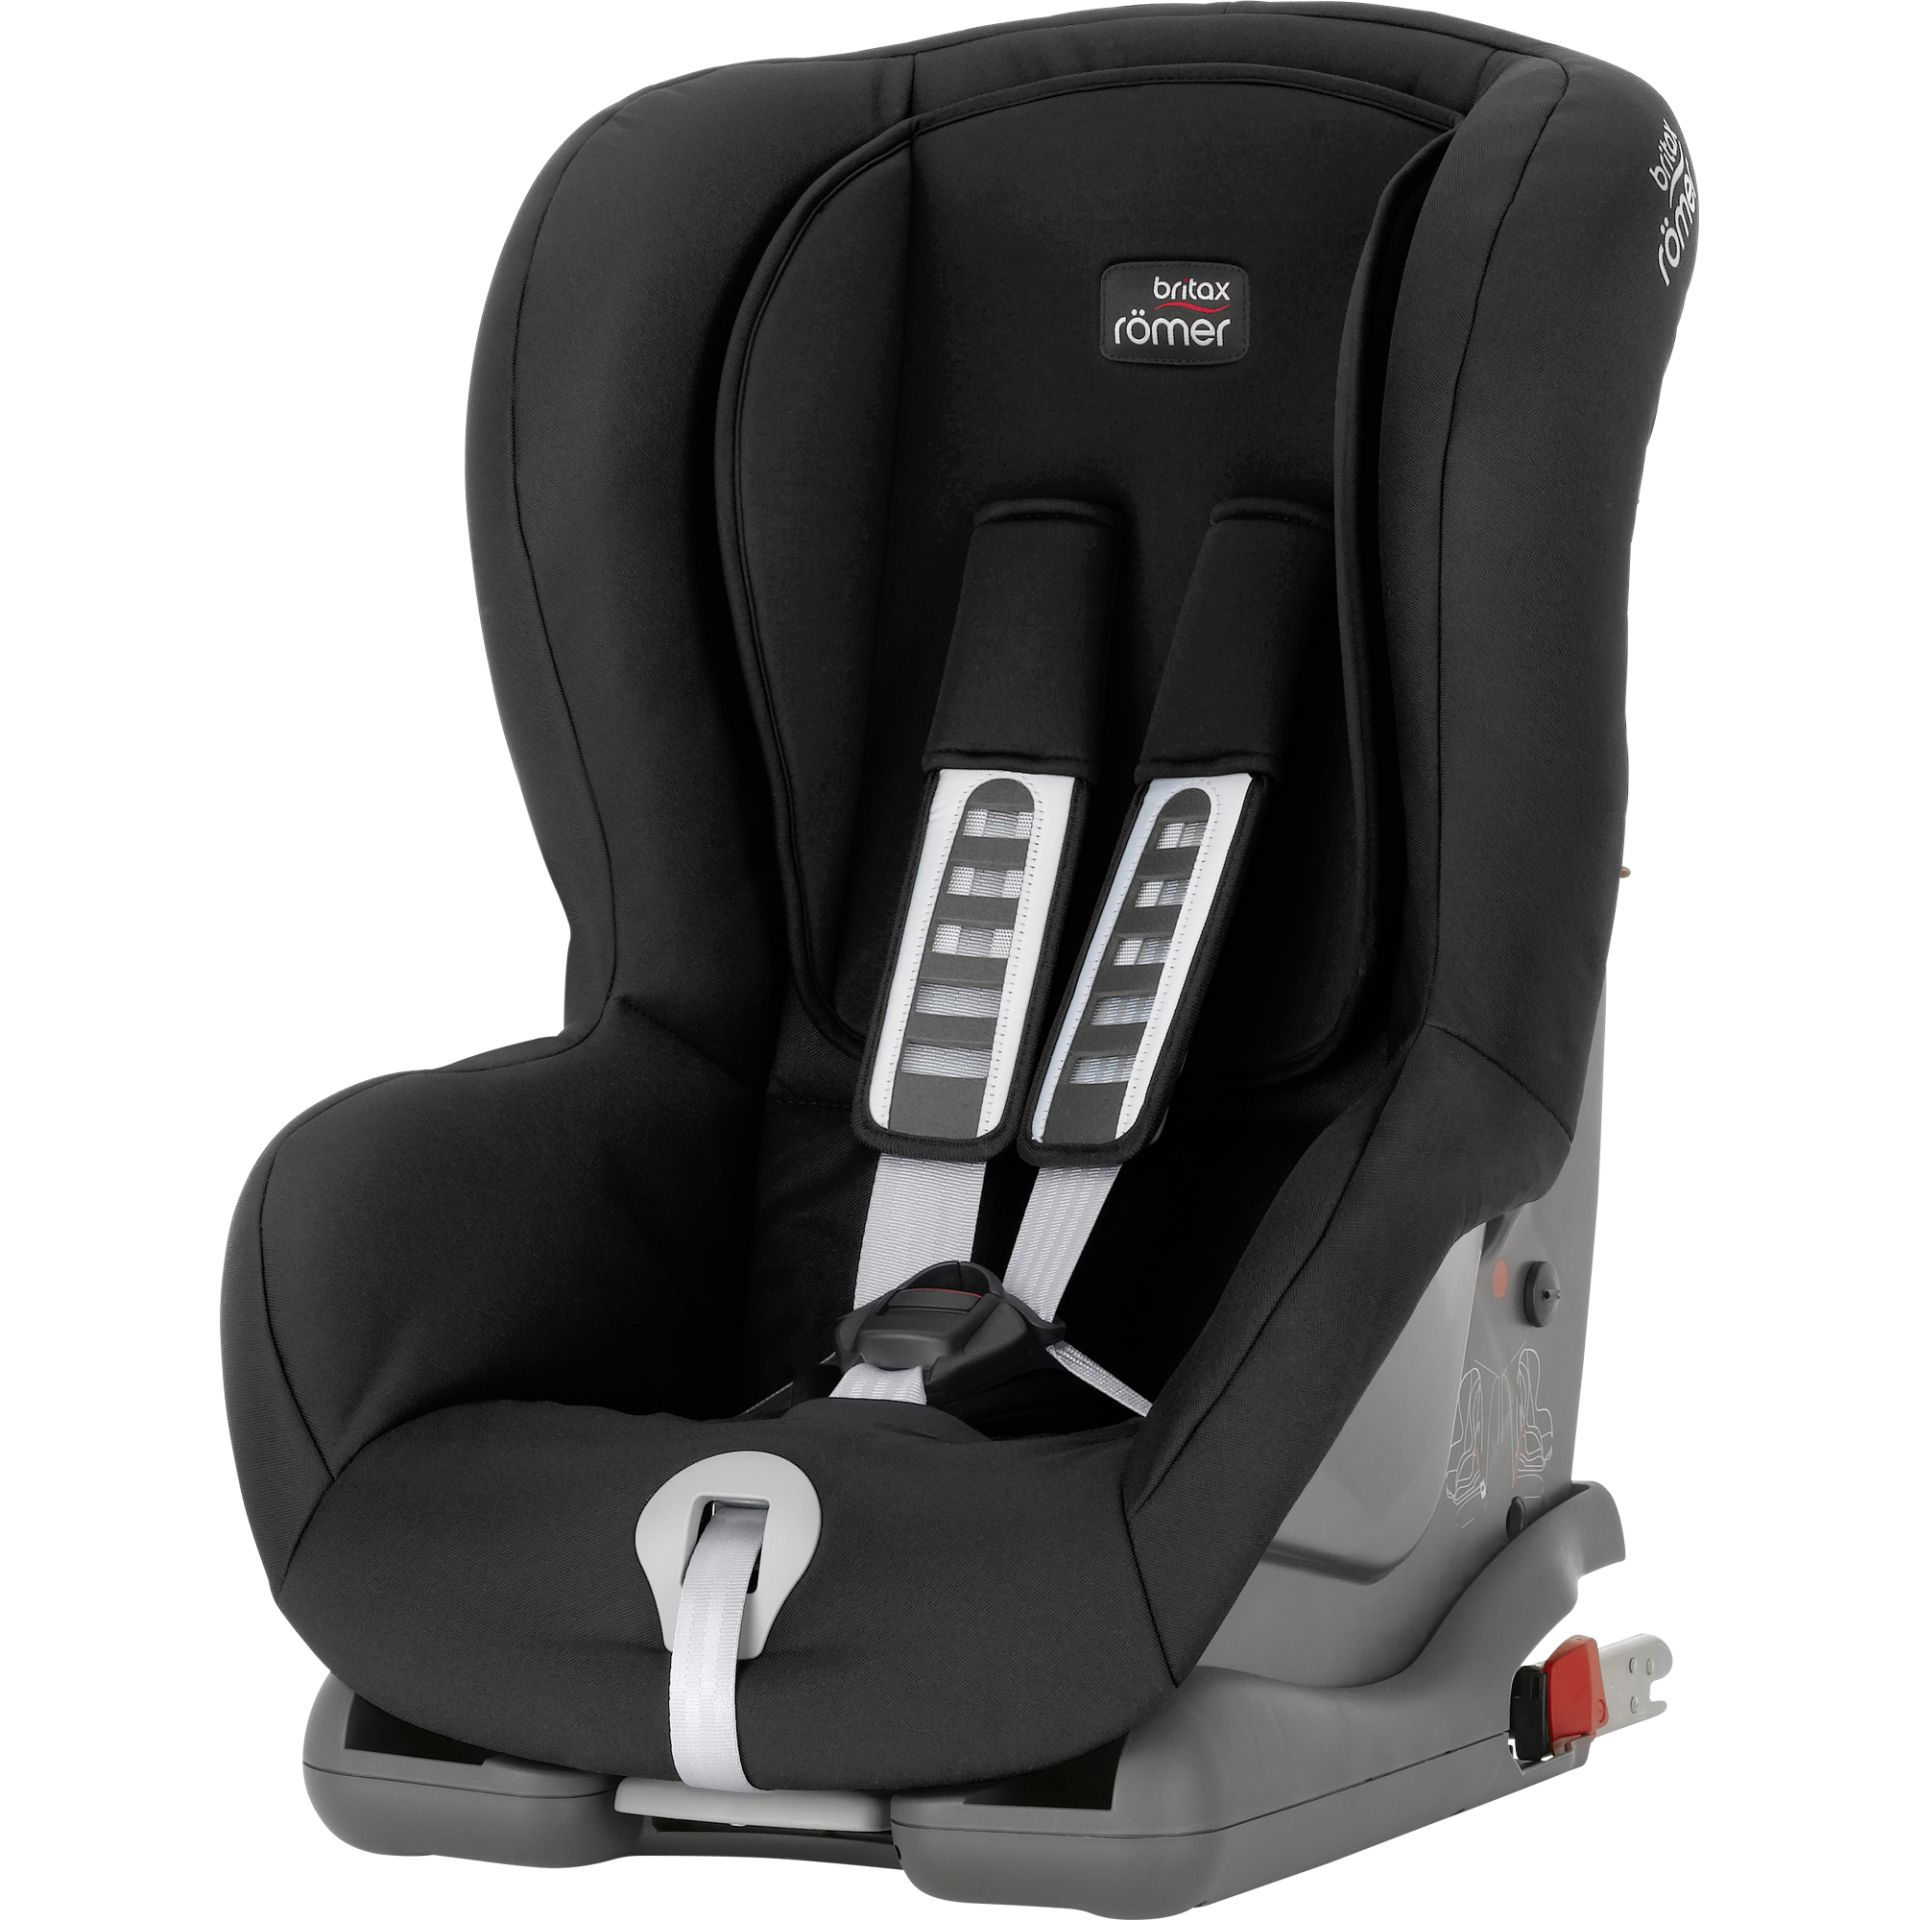 britax r mer kindersitz duo plus online kaufen bei kidsroom kindersitze kindersitze mit isofix. Black Bedroom Furniture Sets. Home Design Ideas